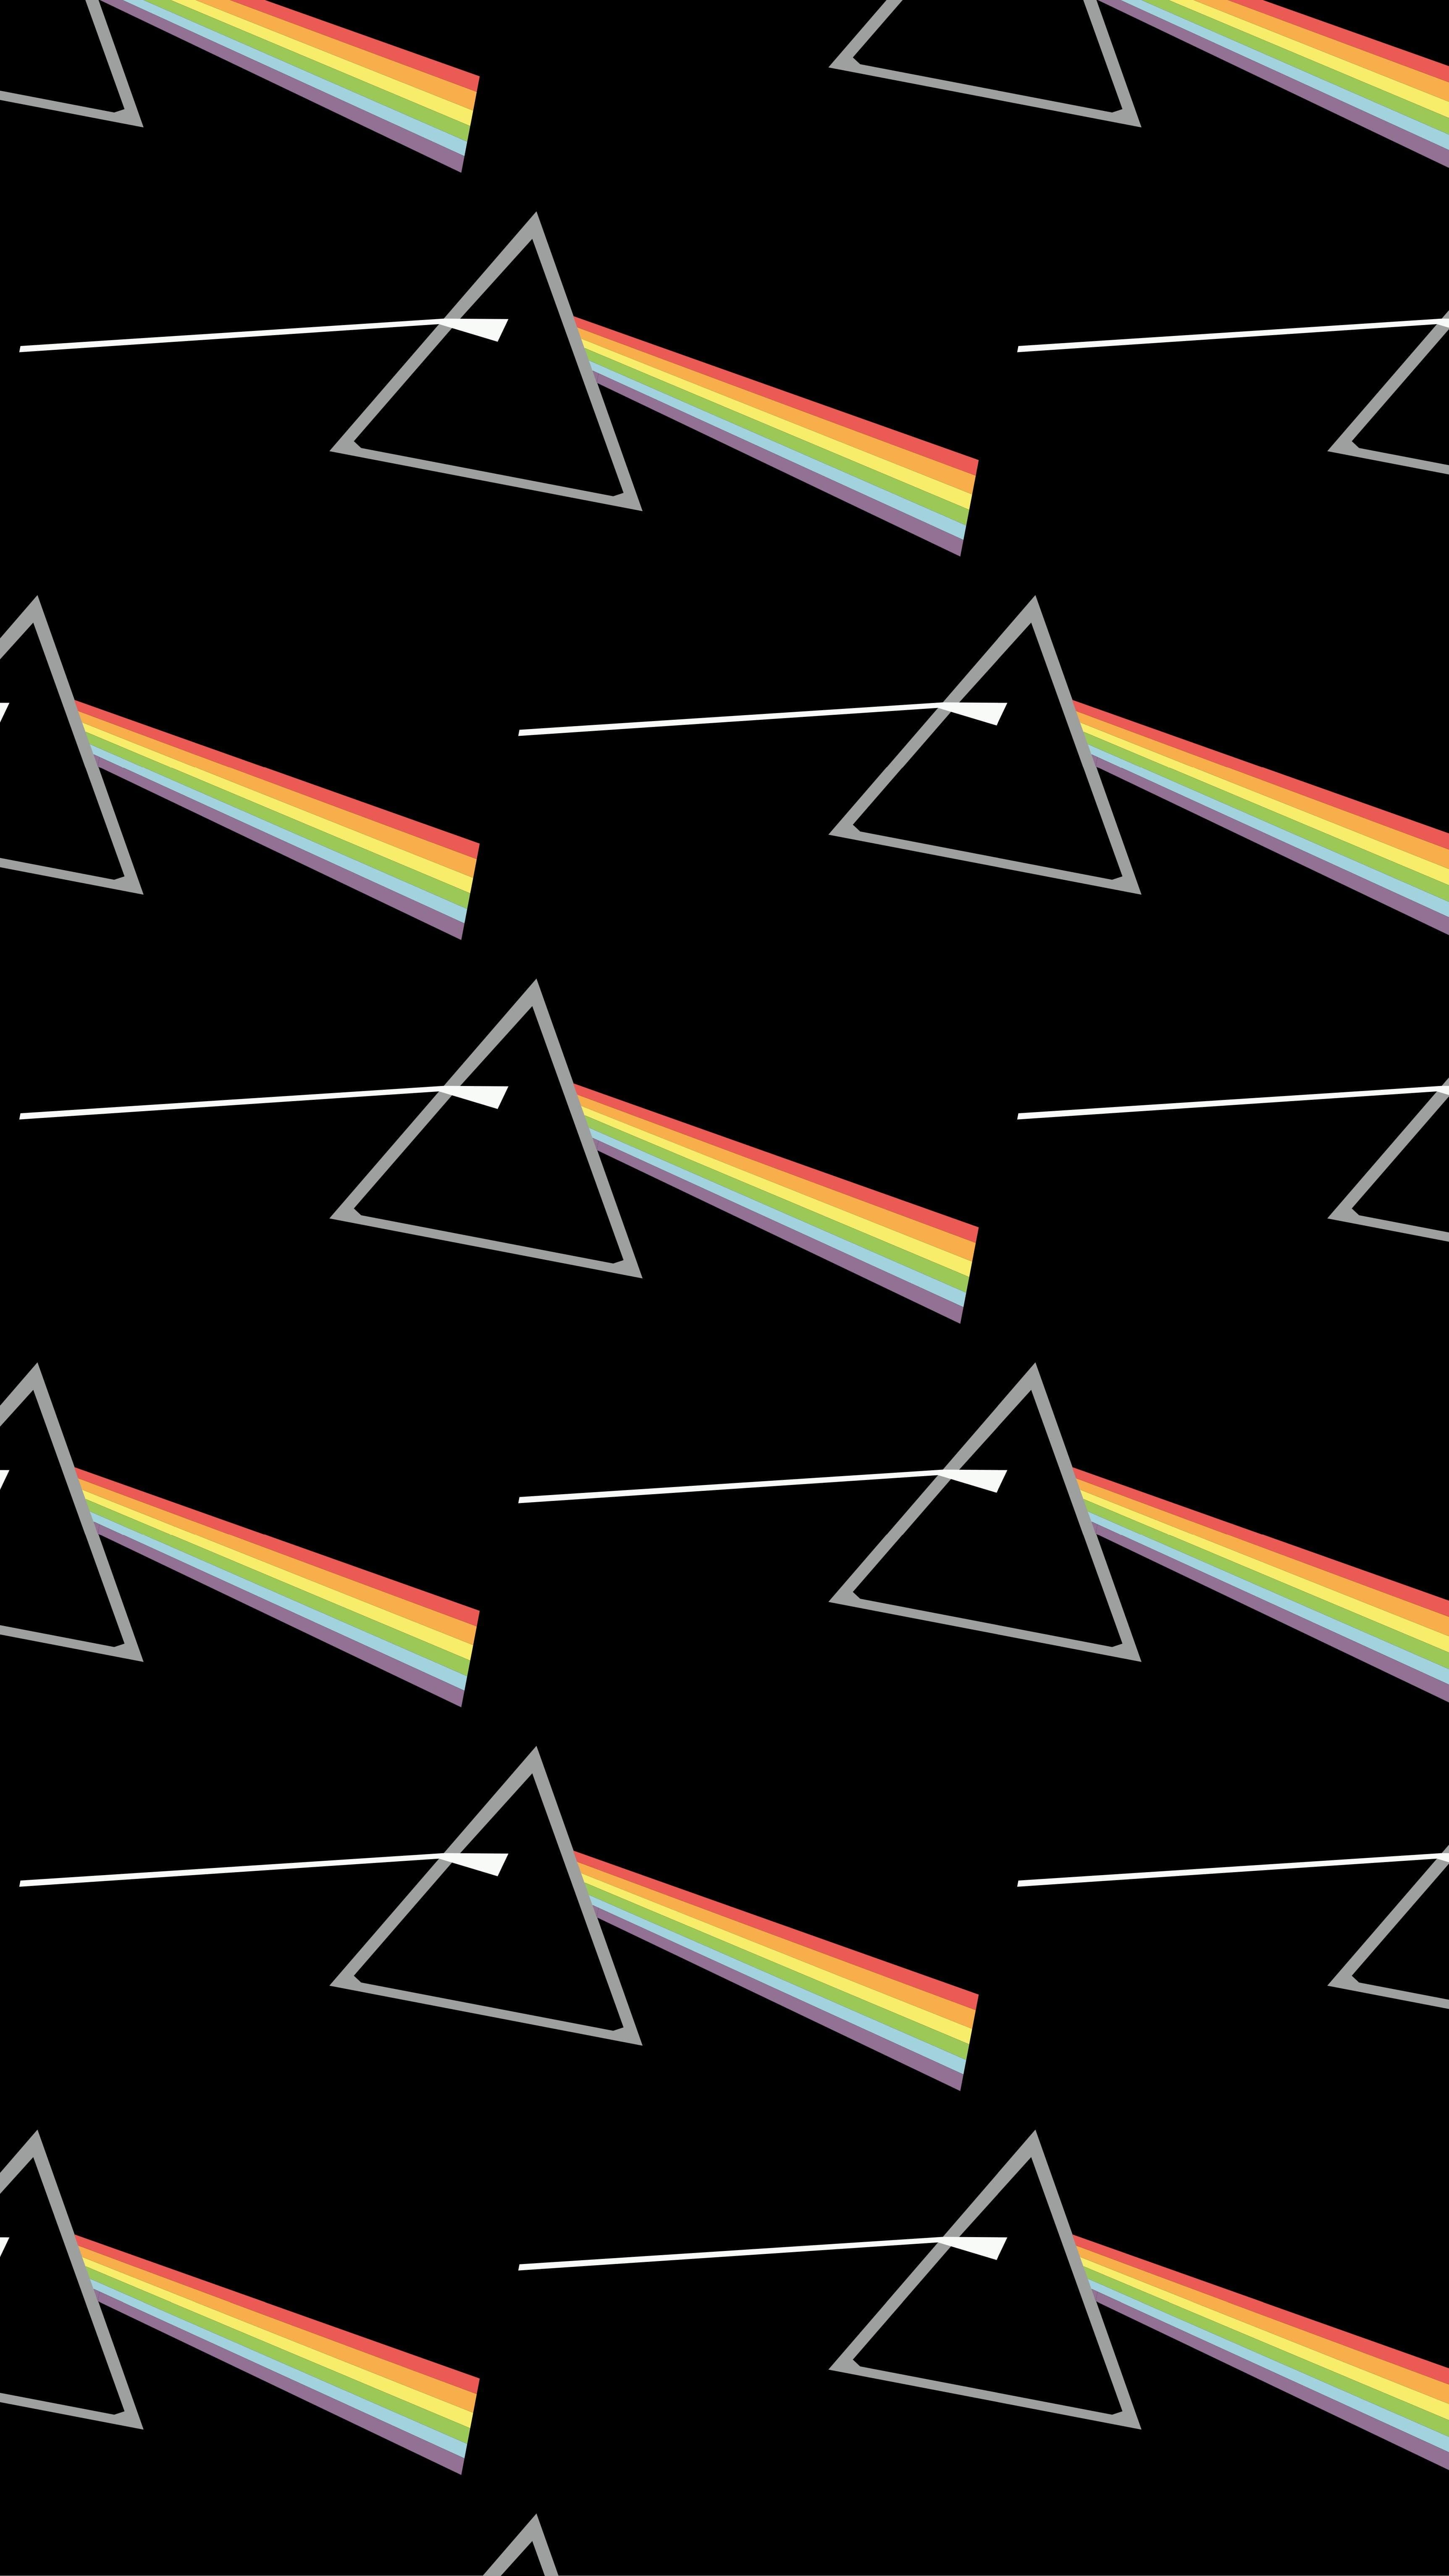 Heres a Pink Floyd Wallpaper for Mobile Devices Music